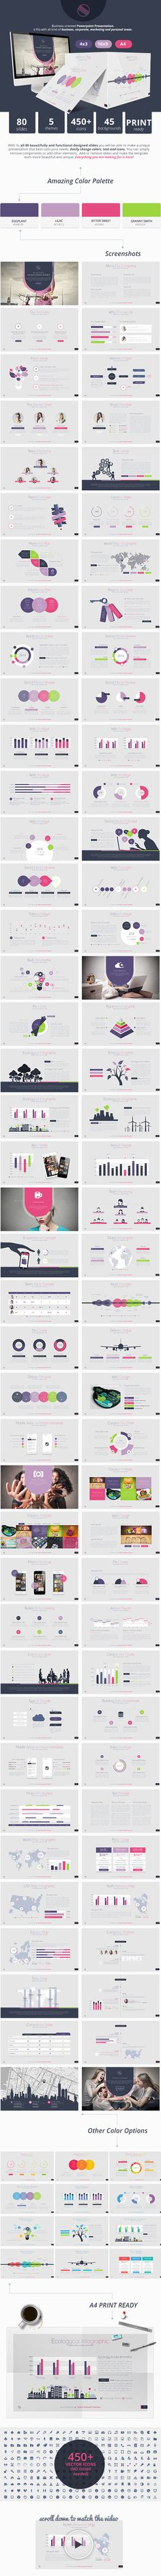 Ombre Powerpoint Presentation Template #powerpoint #powerpointtemplate #presentation Download: http://graphicriver.net/item/ombre-powerpoint-presentation/12006996?ref=ksioks